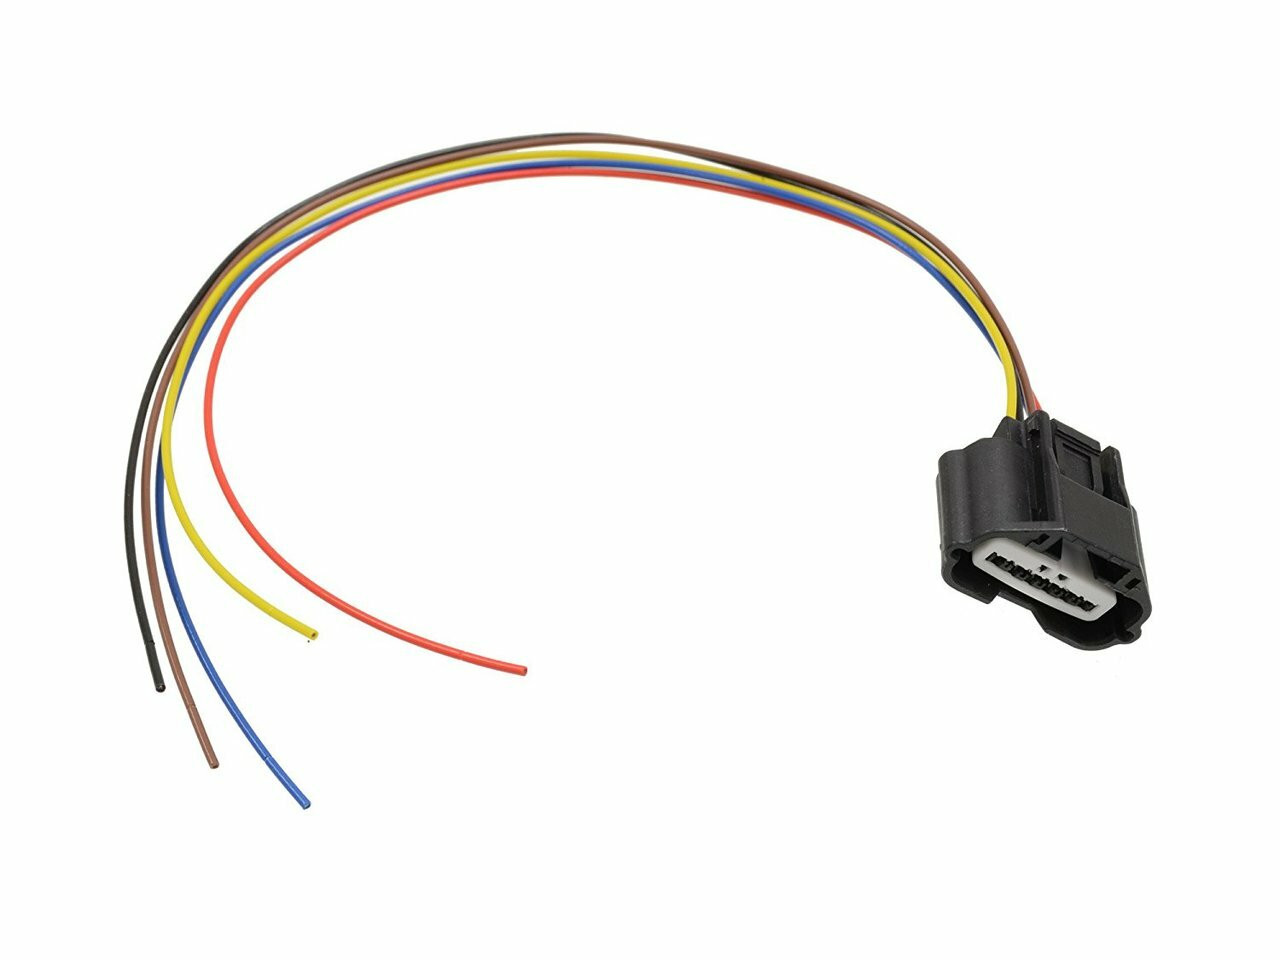 medium resolution of 5 wire nissan maf mass air flow connector infiniti vq35 10 harness nissan maf wire harness